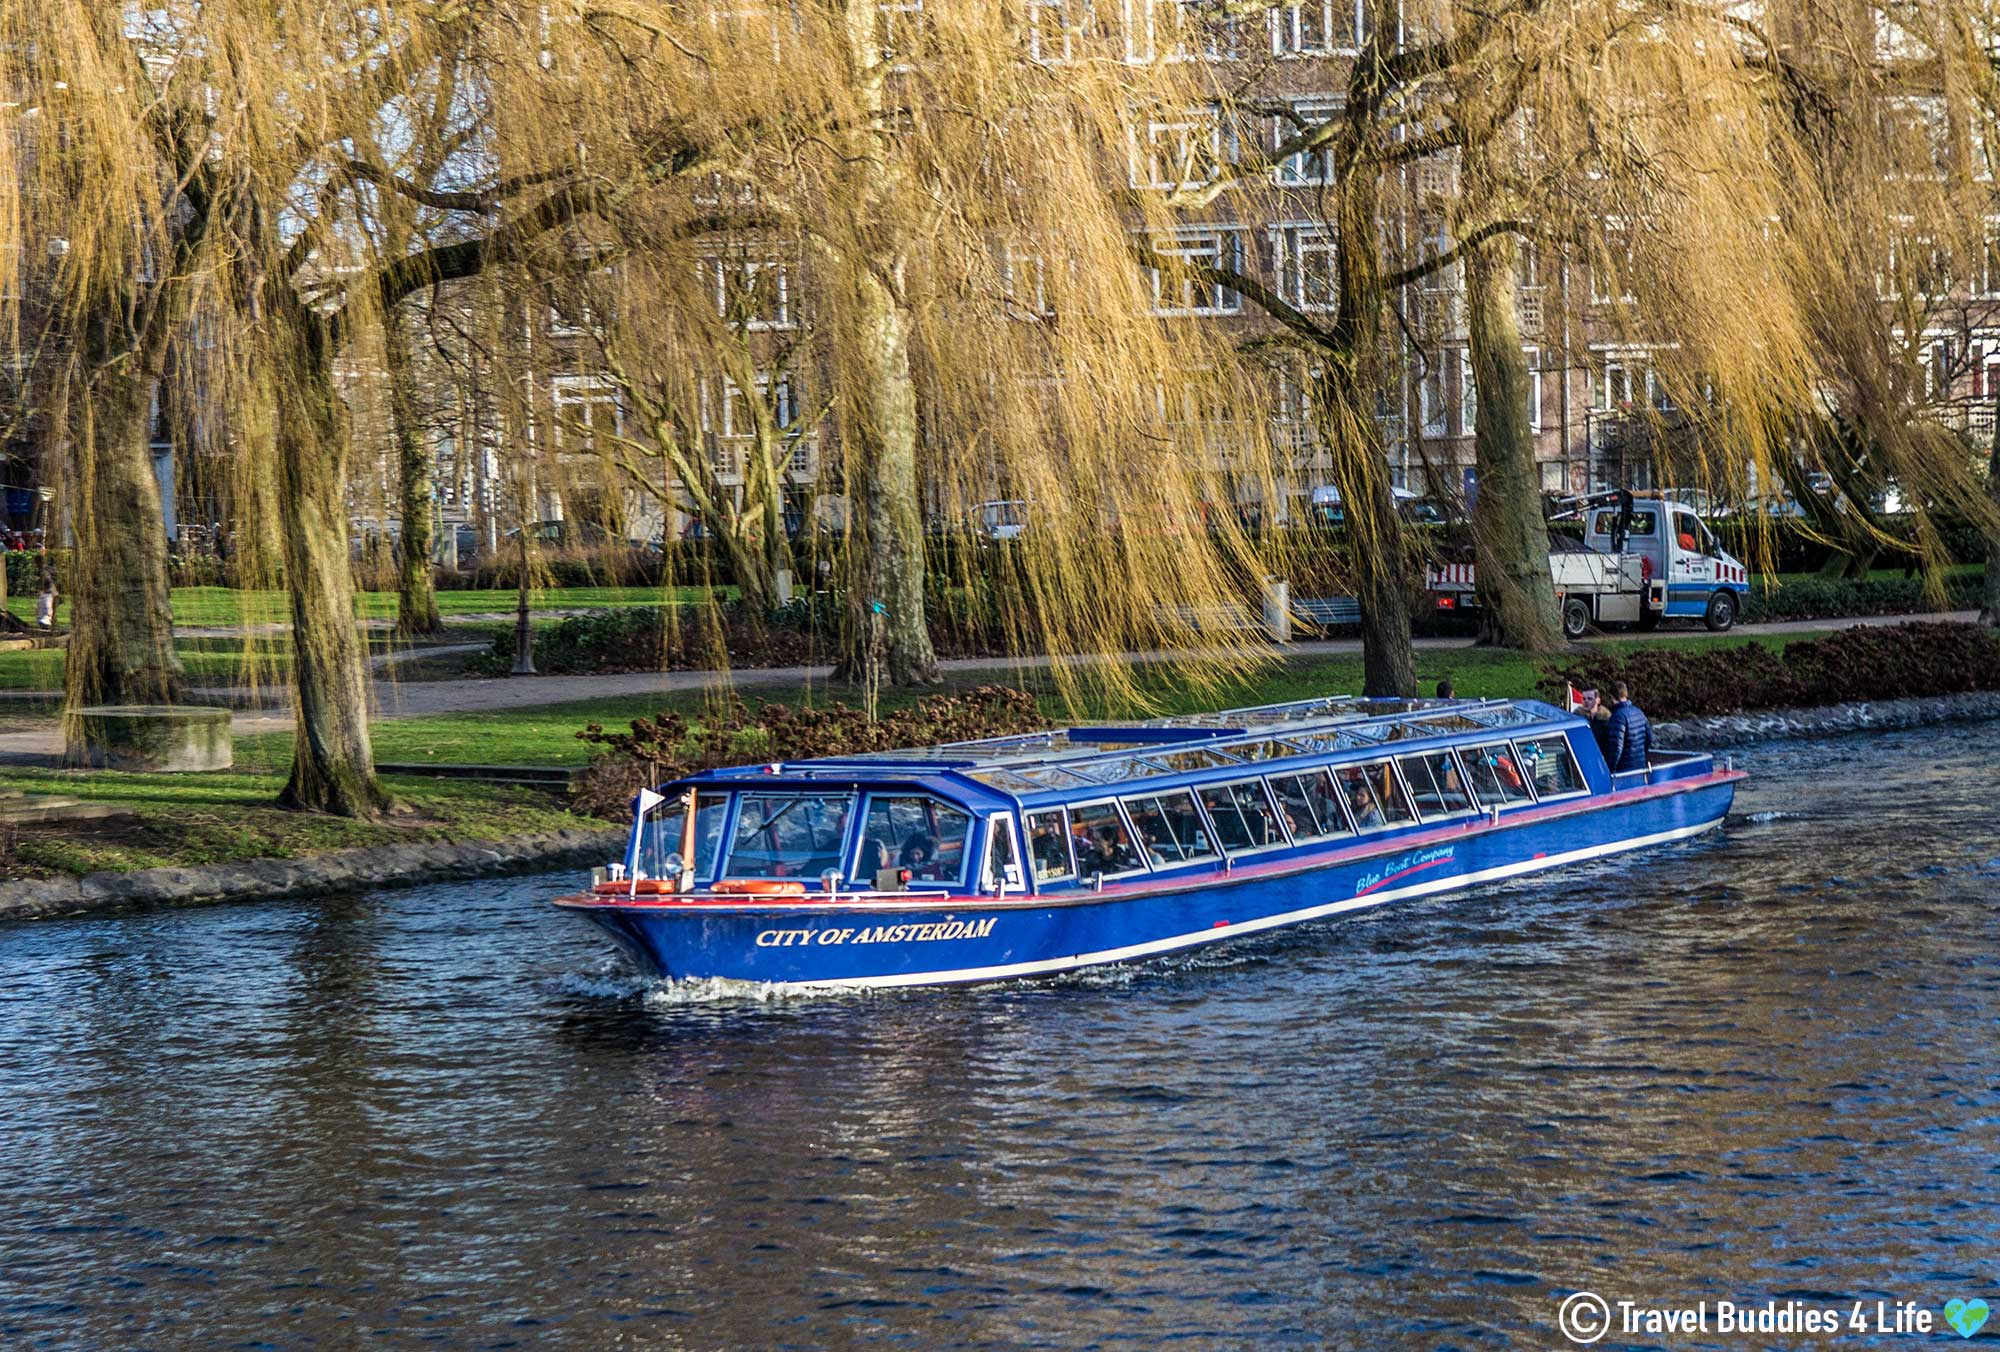 Netherlands Canal Cruise Boat On The Water In Amsterdam, Holland, Europe